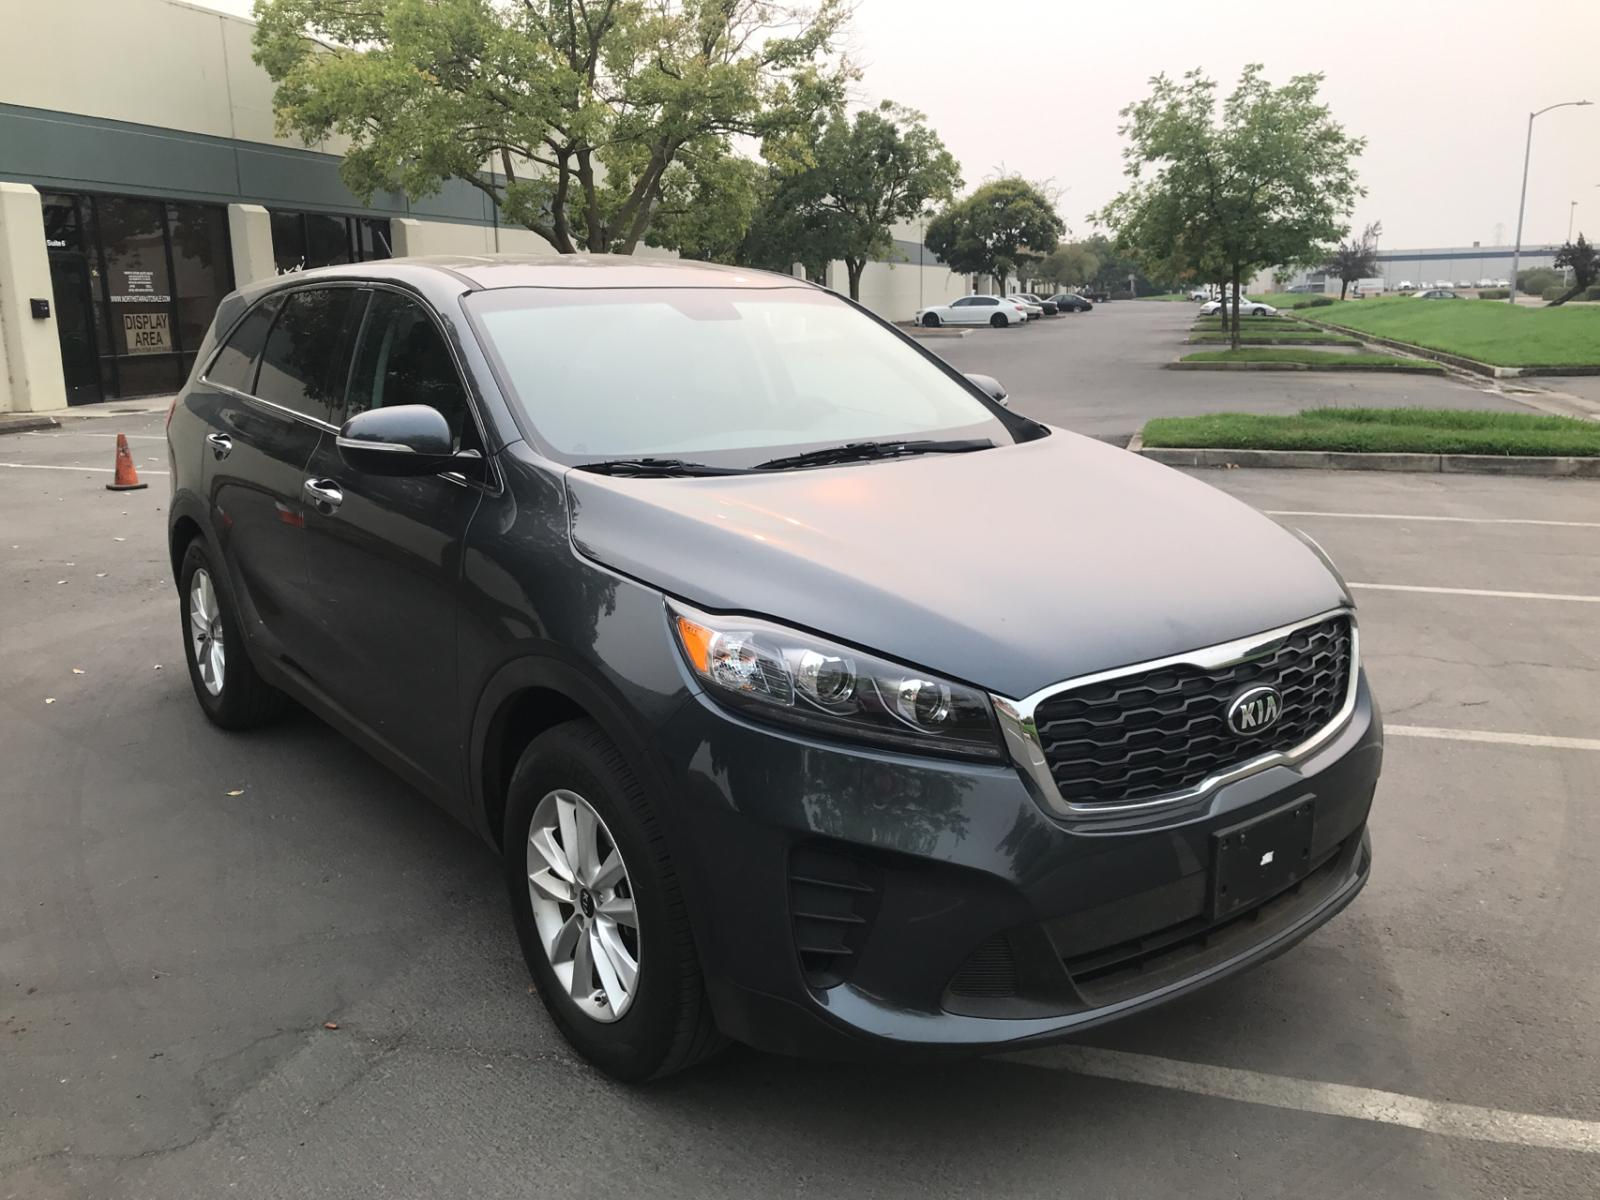 2020 kia sorento s for sale at copart sacramento ca lot 49252910 salvagereseller com salvagereseller com